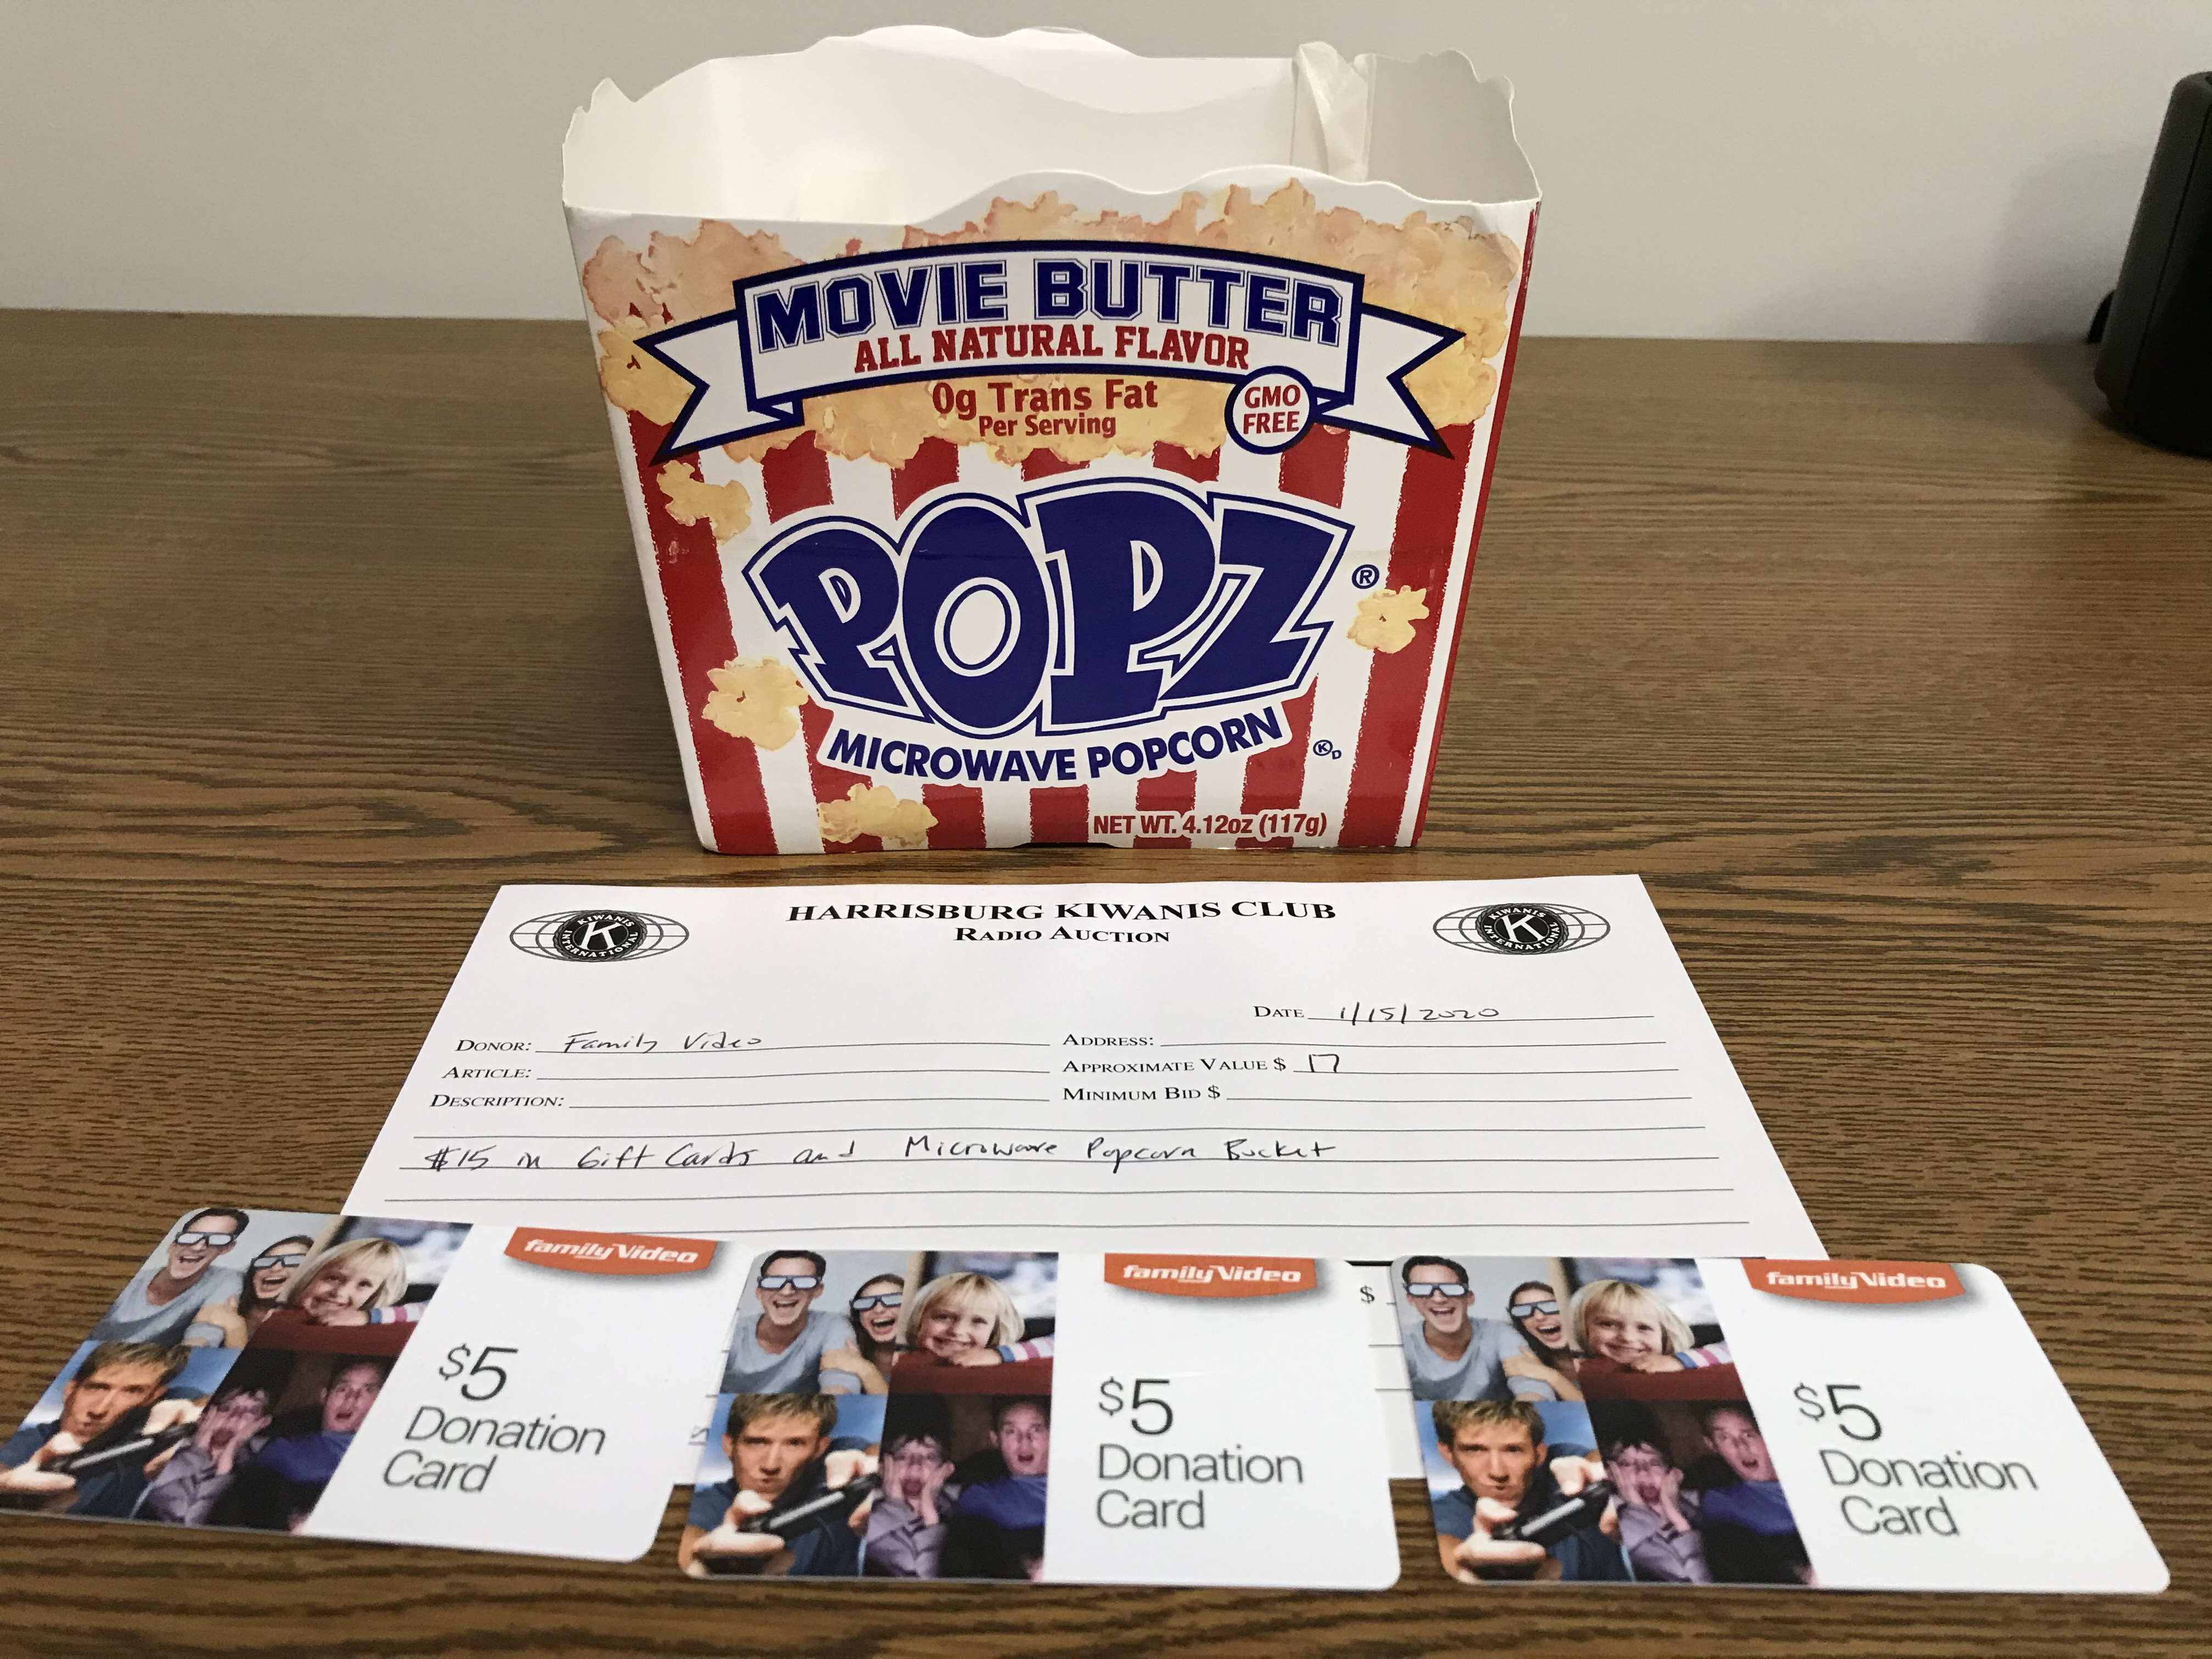 Item 225 - Family Video $15 in Gift Cards and Microwave Popcorn Bucket